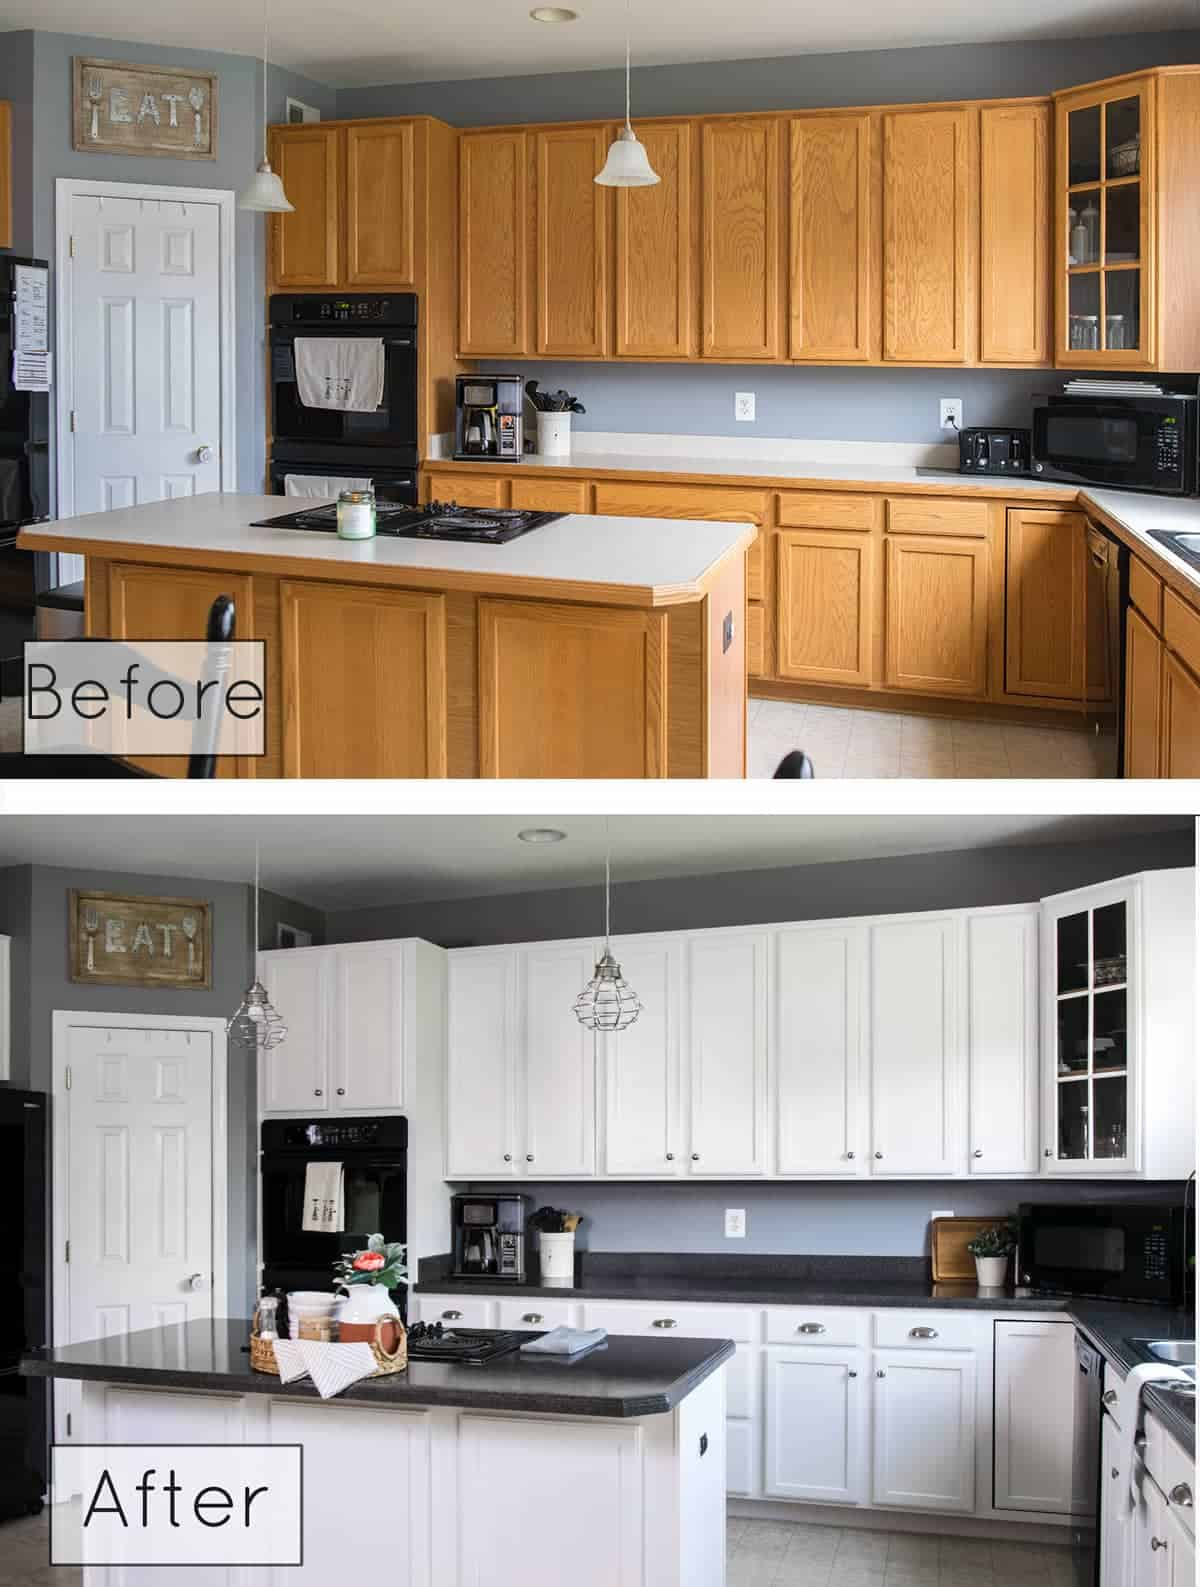 Before & after photo of kitchen remodel including white kitchen cabinet painting and replacing light fixtures